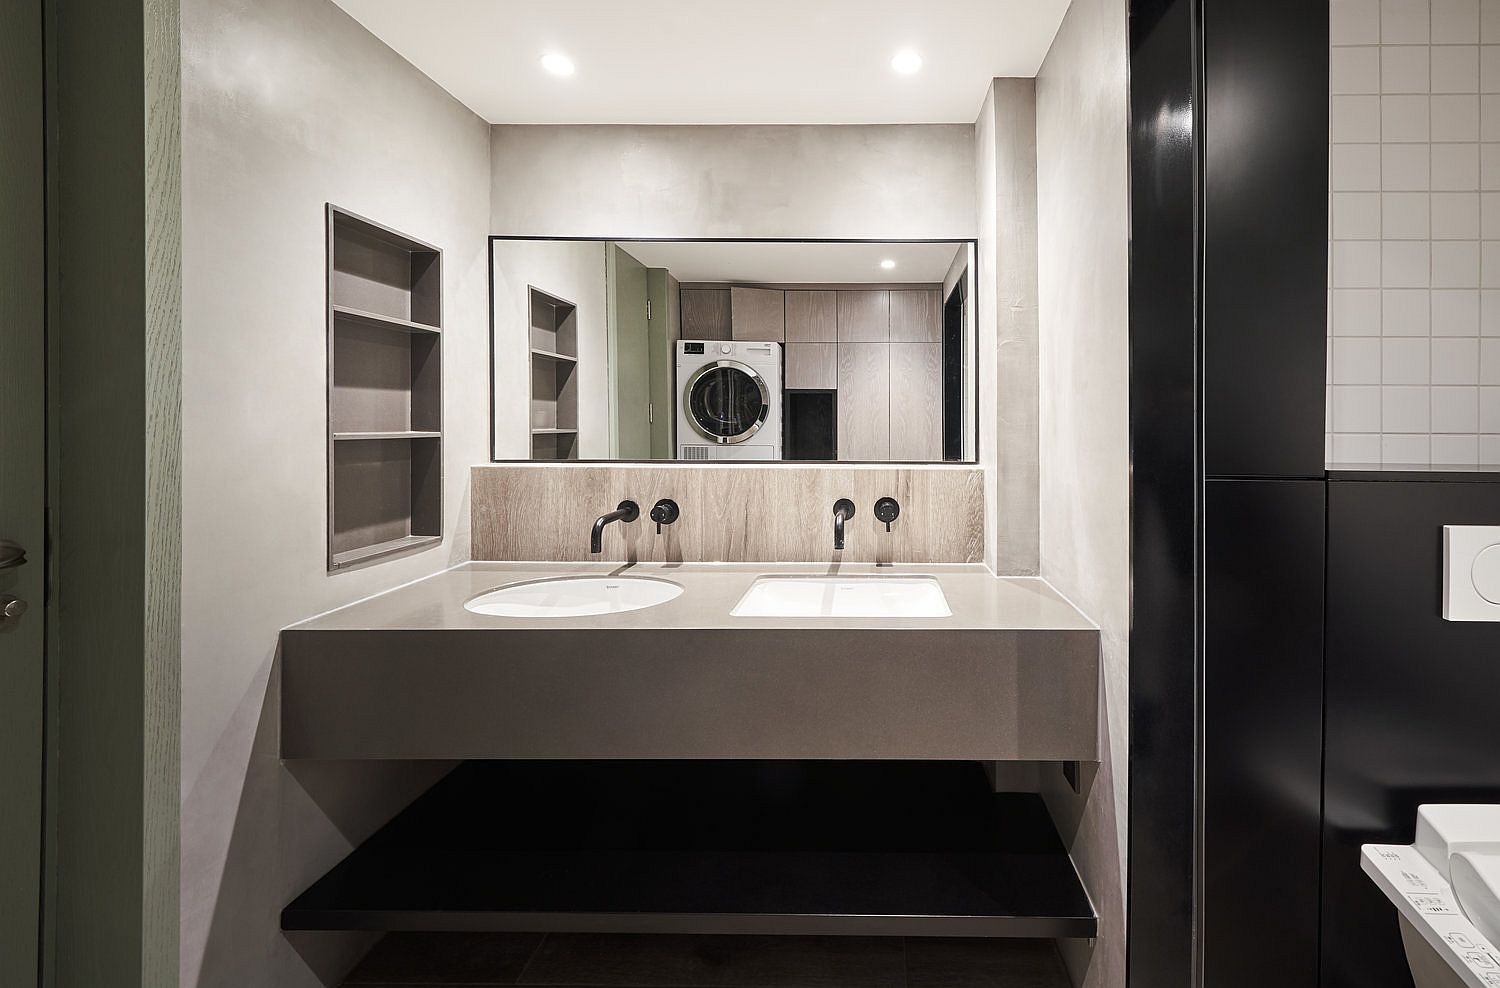 Hint-of-green-for-the-modern-minimal-bathroom-in-neutral-hues